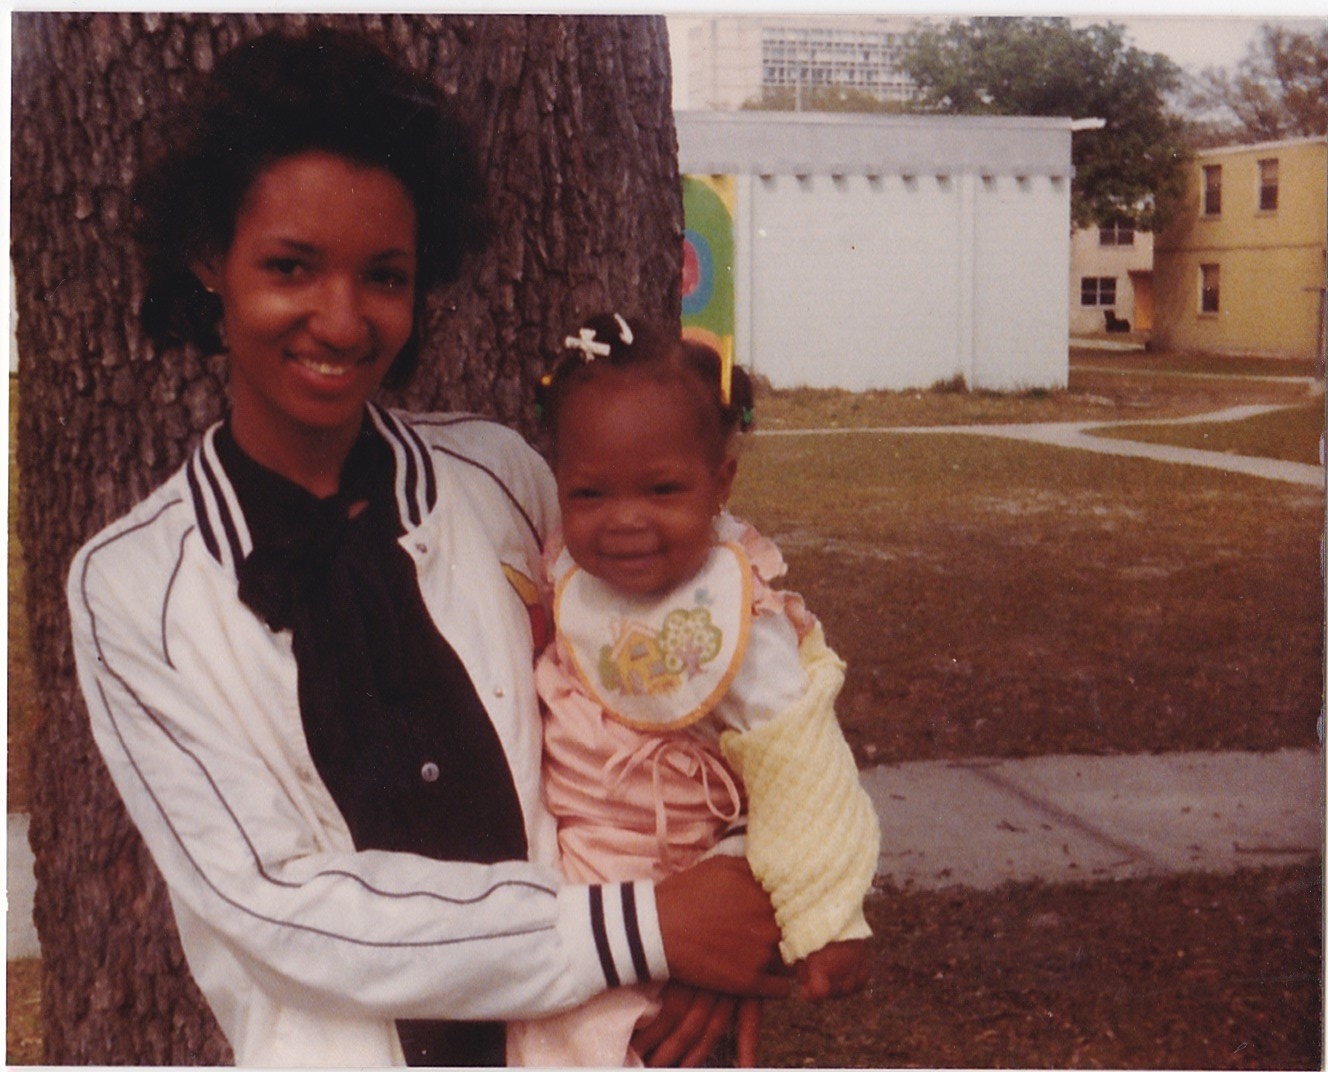 April 1983,The Blodgett Homes in Jacksonville, Florida. From the personal archive of Renata Cherlise